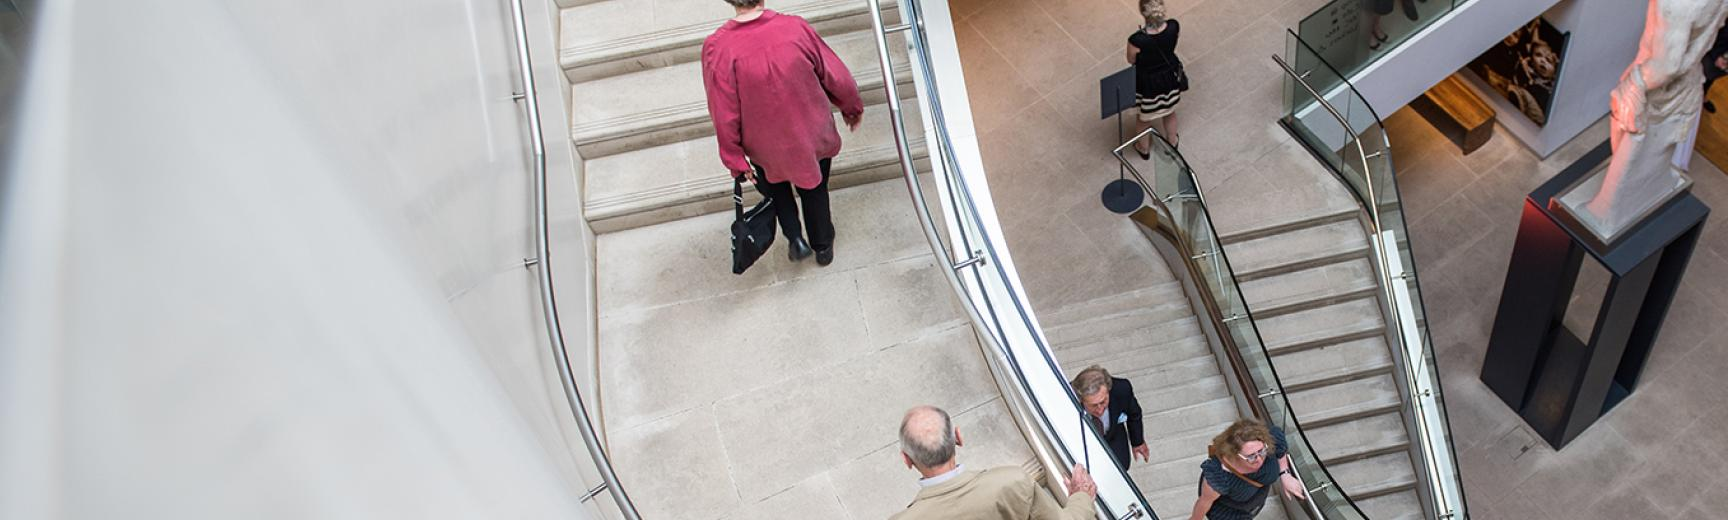 Visitors on the Atrium Staircase